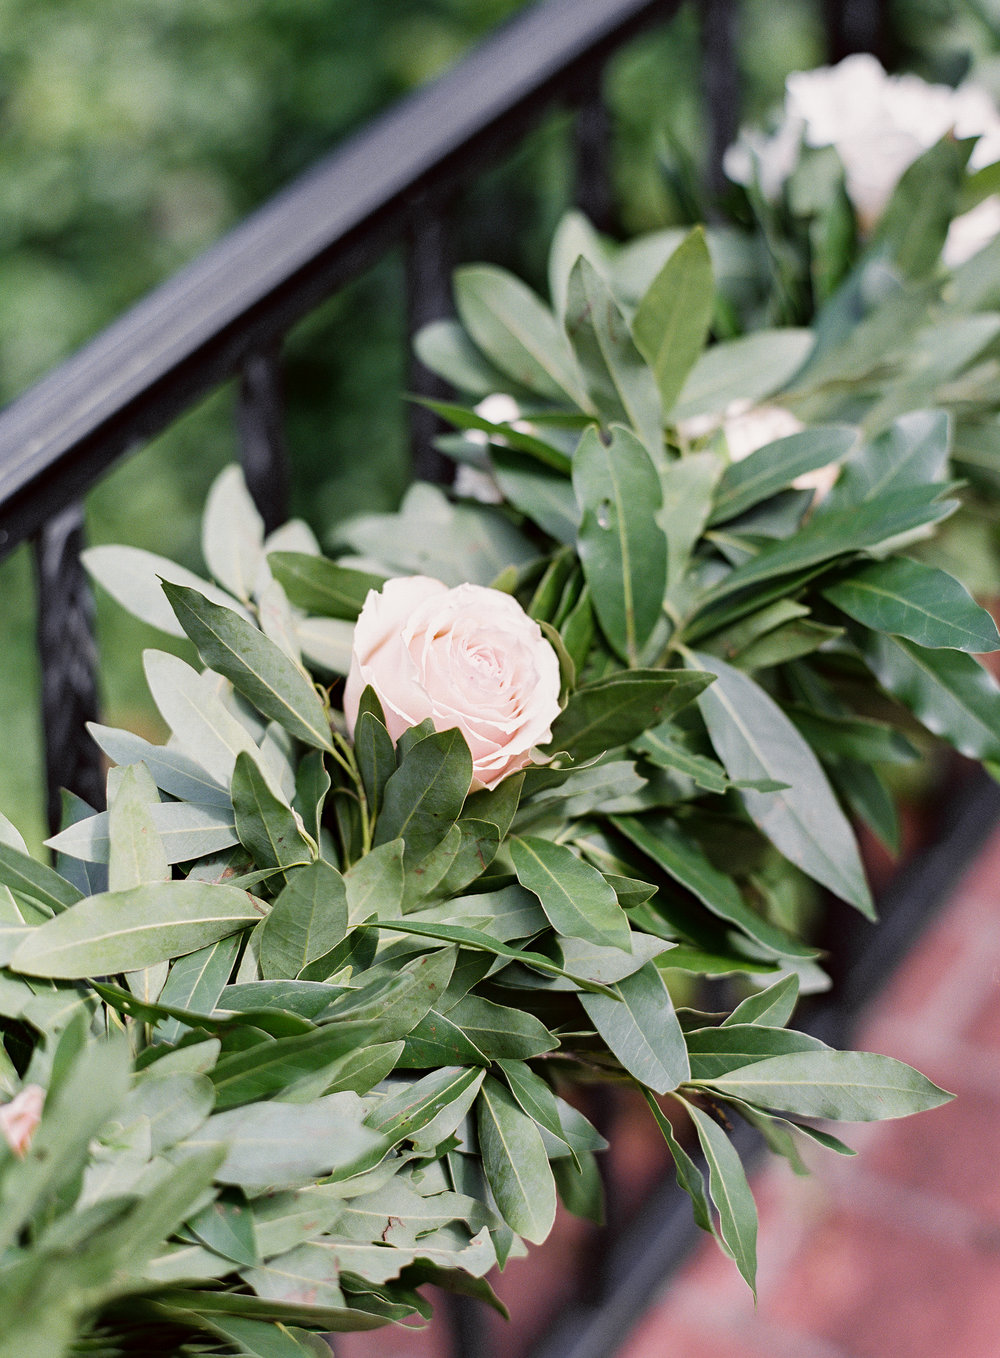 Meghan Mehan Photography | Fine Art Film Wedding Photographer | California | San Francisco | Napa | Sonoma | Santa Barbara | Big Sur | Destination Wedding Photographer 108.jpg